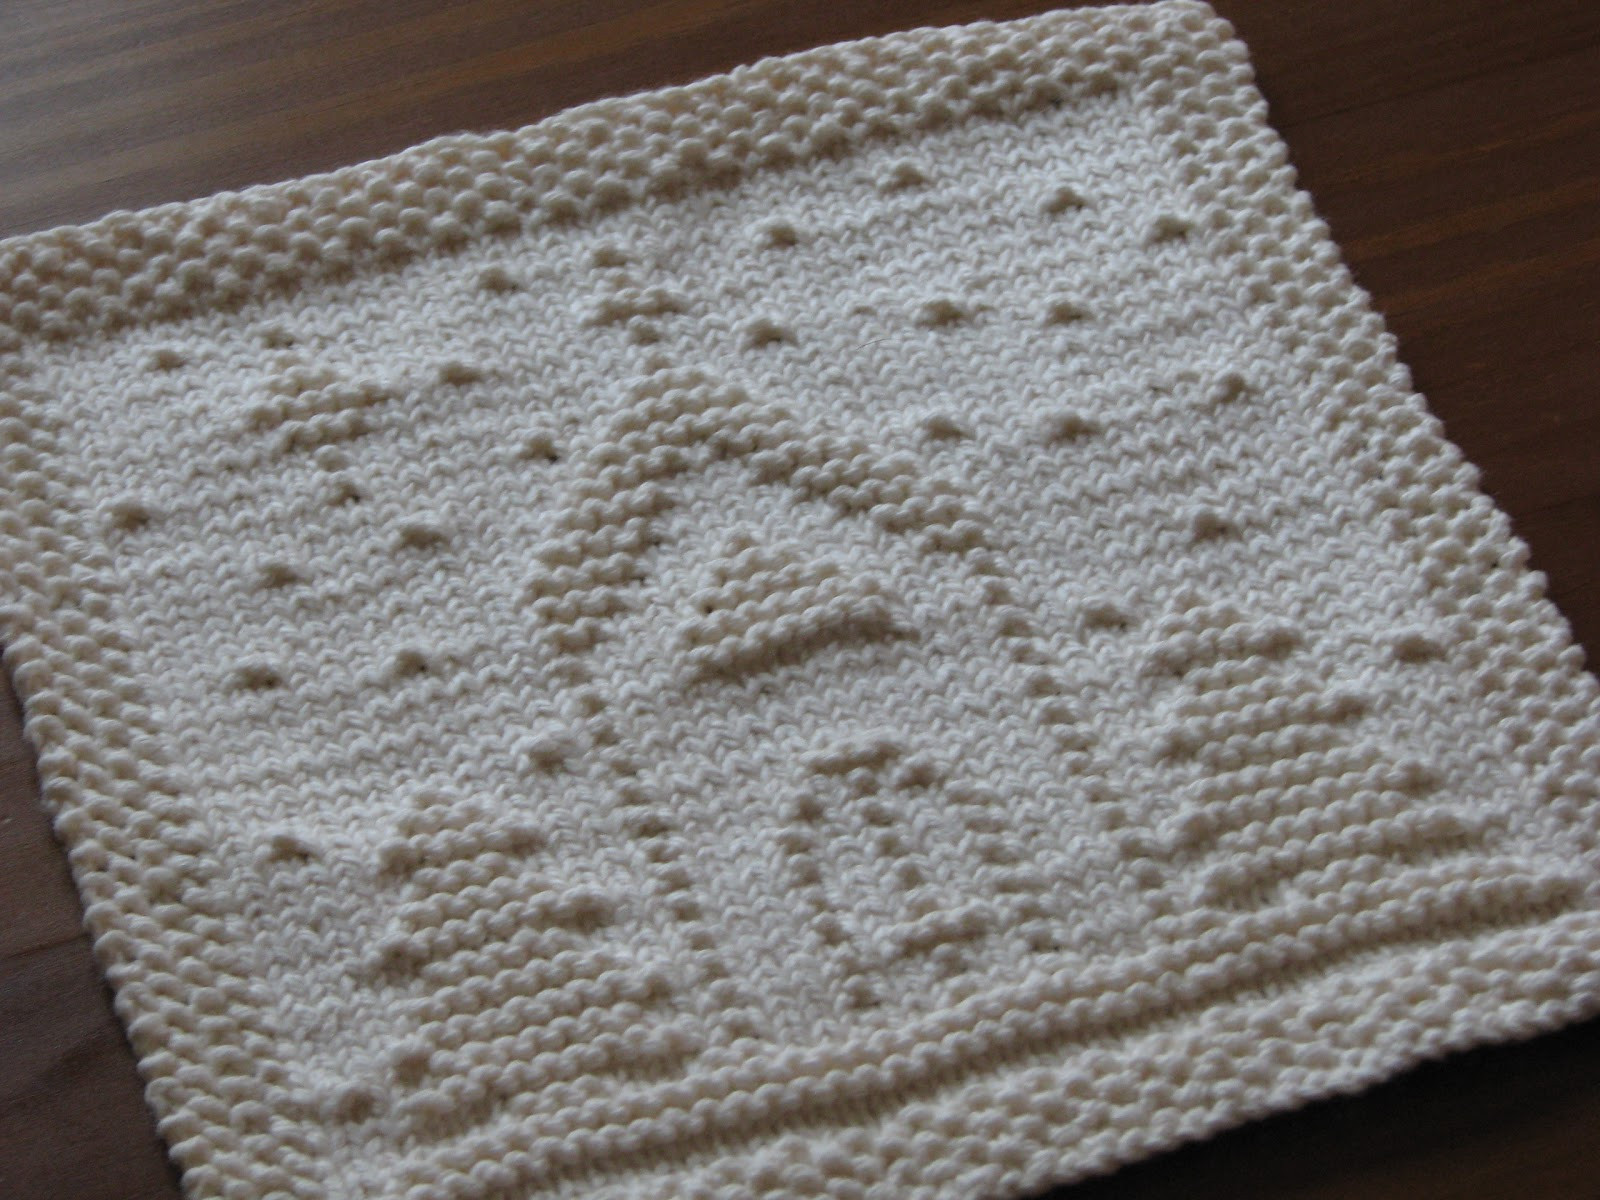 Unique E Crafty Mama O Holy Night Dishcloth Knitted Dishcloth Patterns for Christmas Of Adorable 43 Pics Knitted Dishcloth Patterns for Christmas